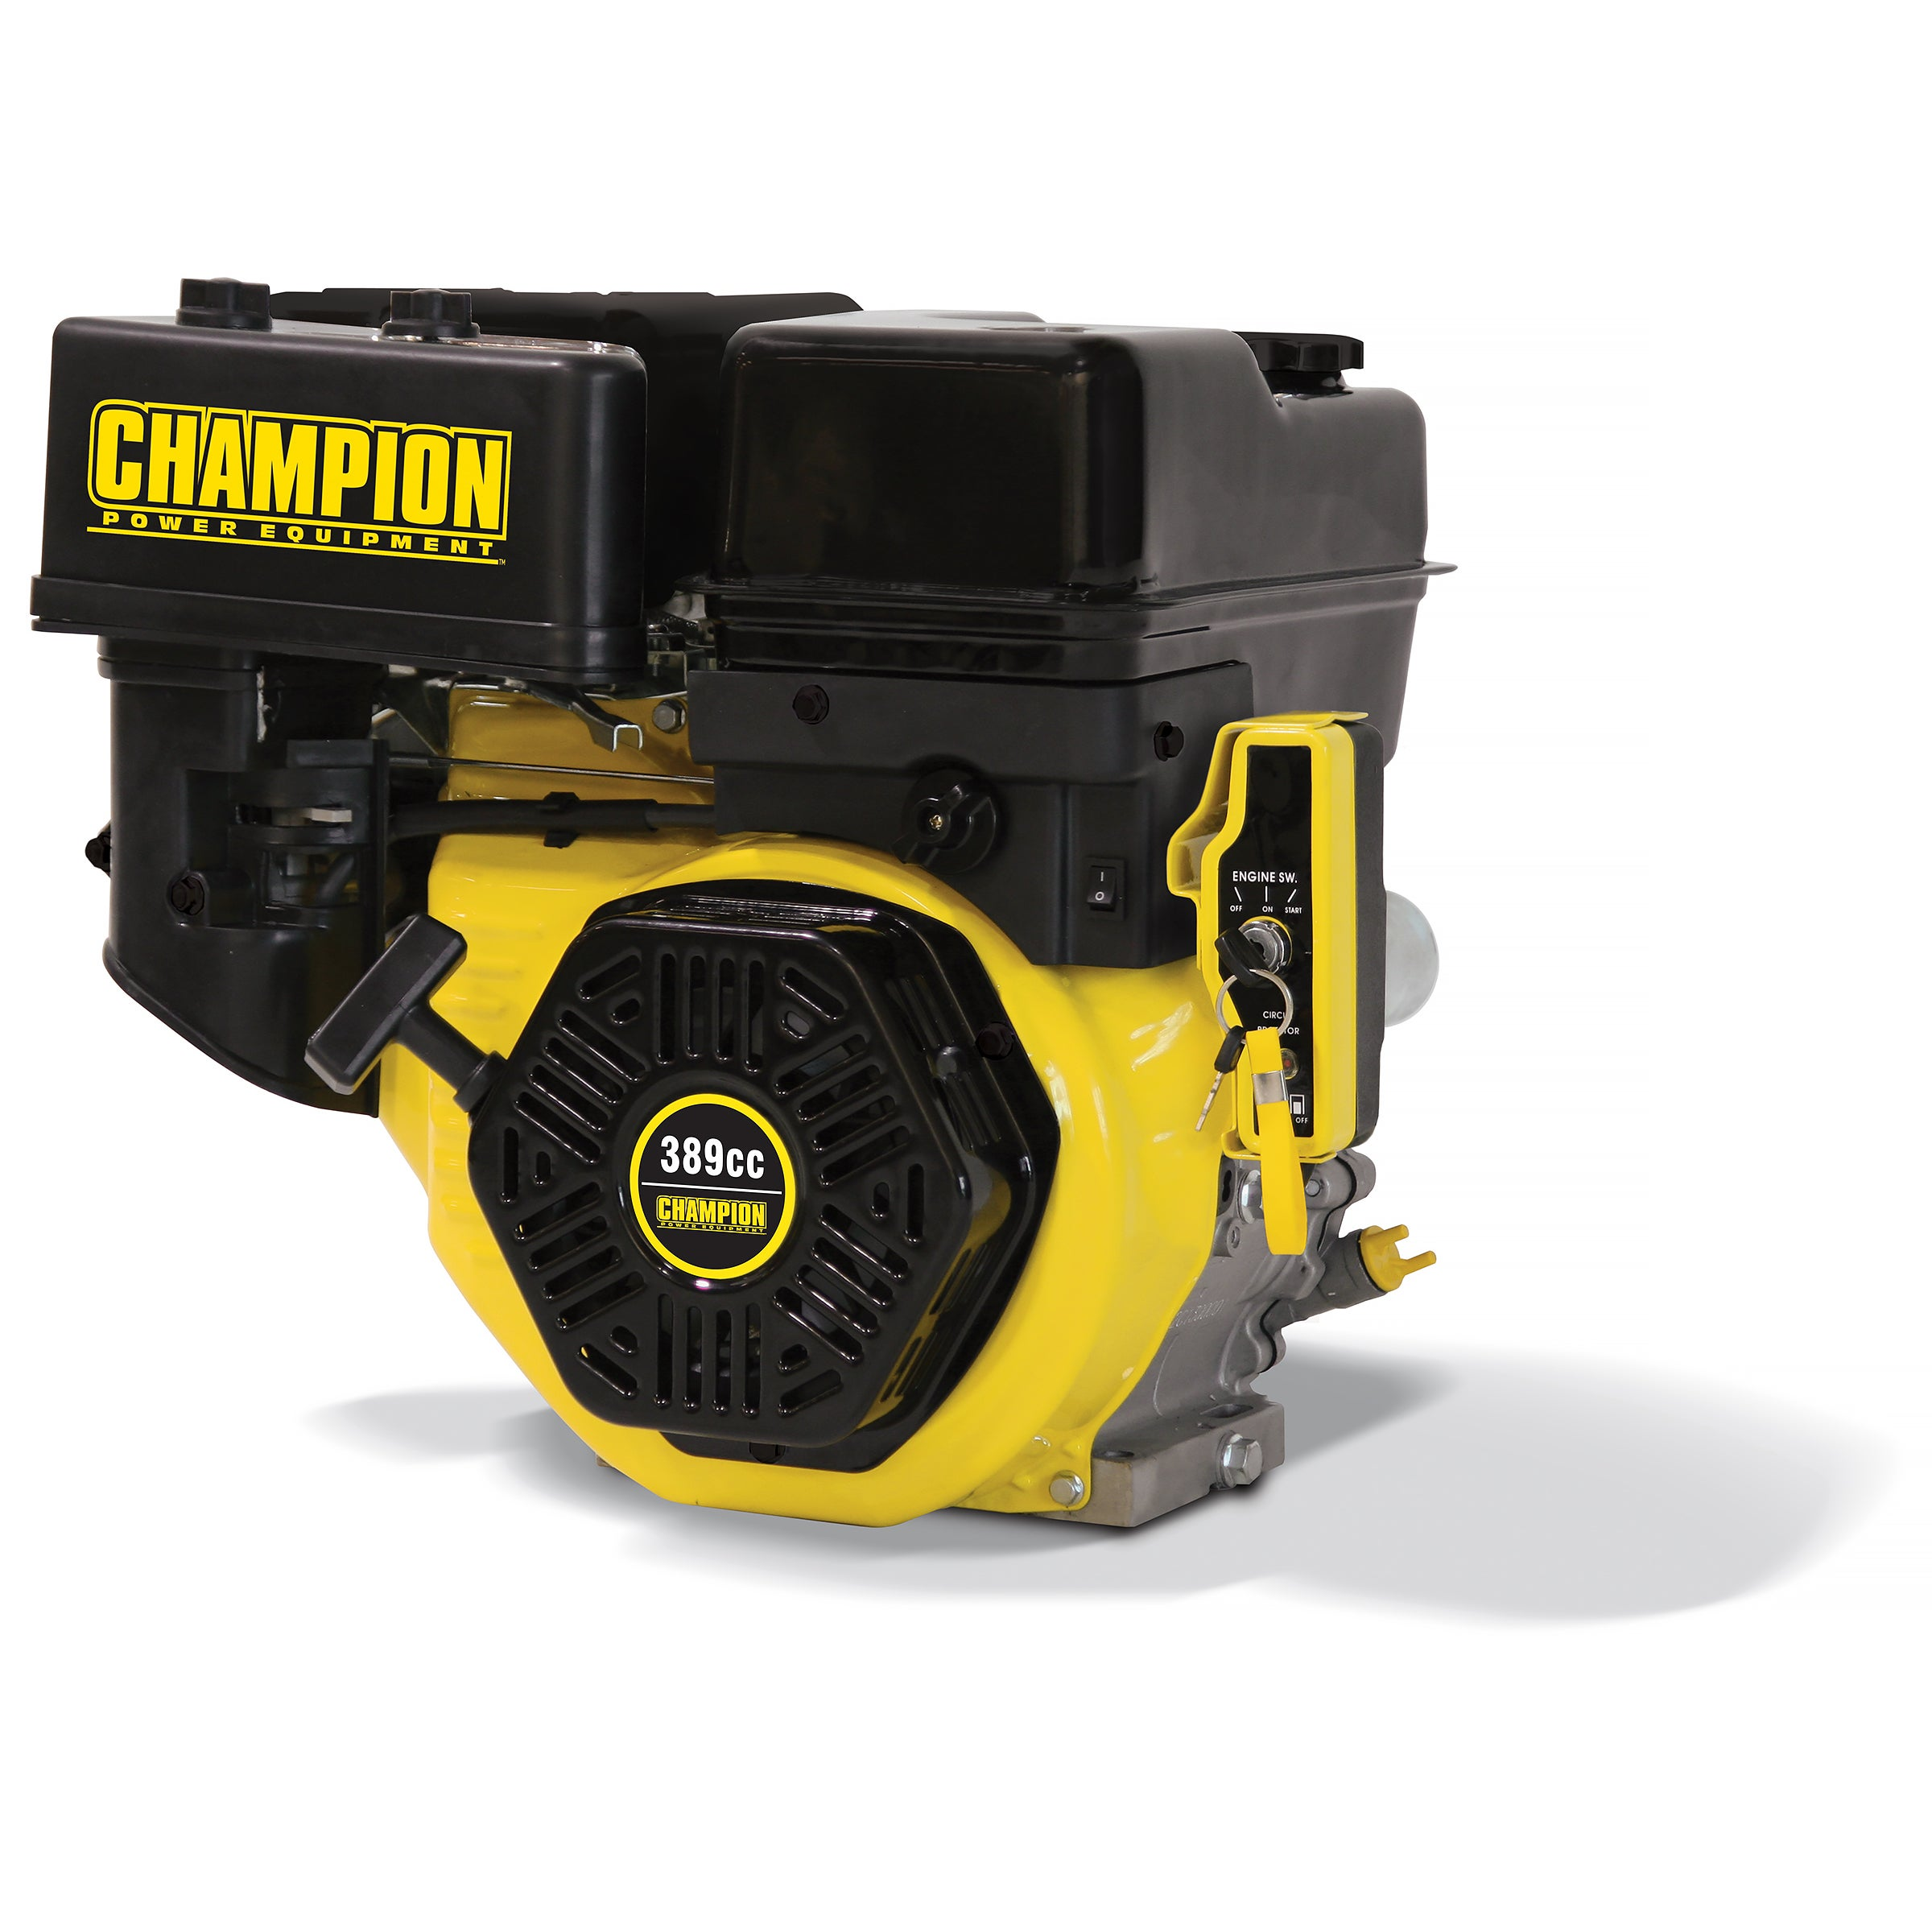 Champion 389cc General Purpose Horizontal Replacement Engine with Electric Start (389cc General Purpose Replacement Engine)